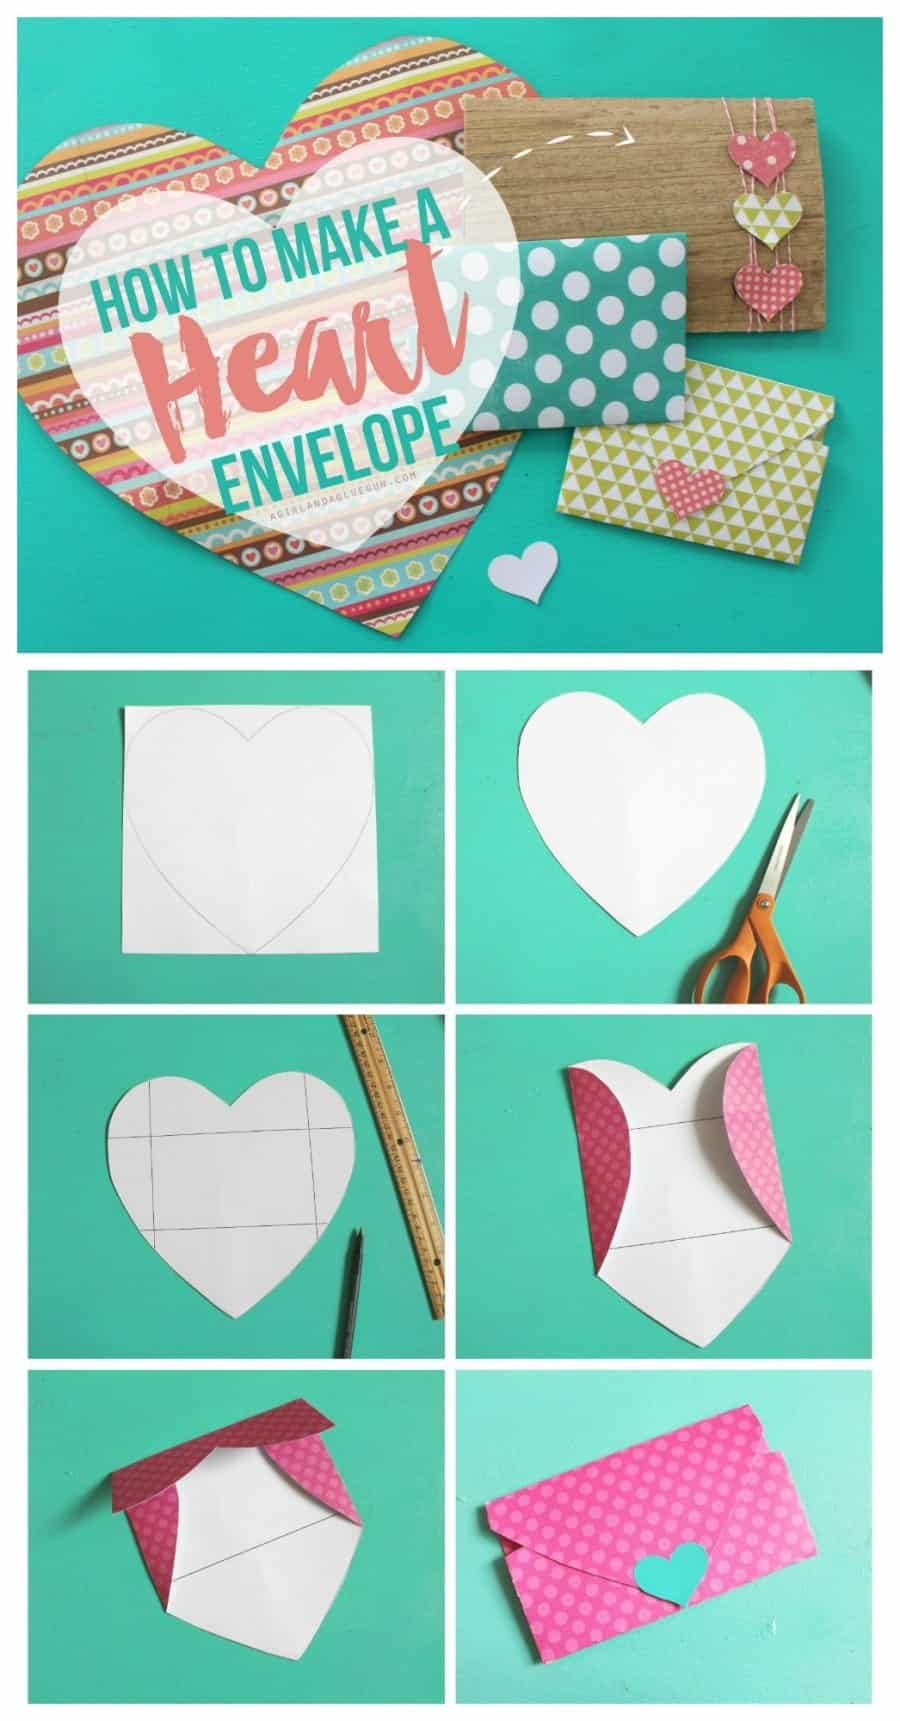 Stunning Valentines Heart Shaped Envelopes A Girl A Glue Gun How To Make A Heart Or Characters549 Your Hands Cialmedialoguefacebook Heart How To Make A Heart Shaped art How To Make A Heart